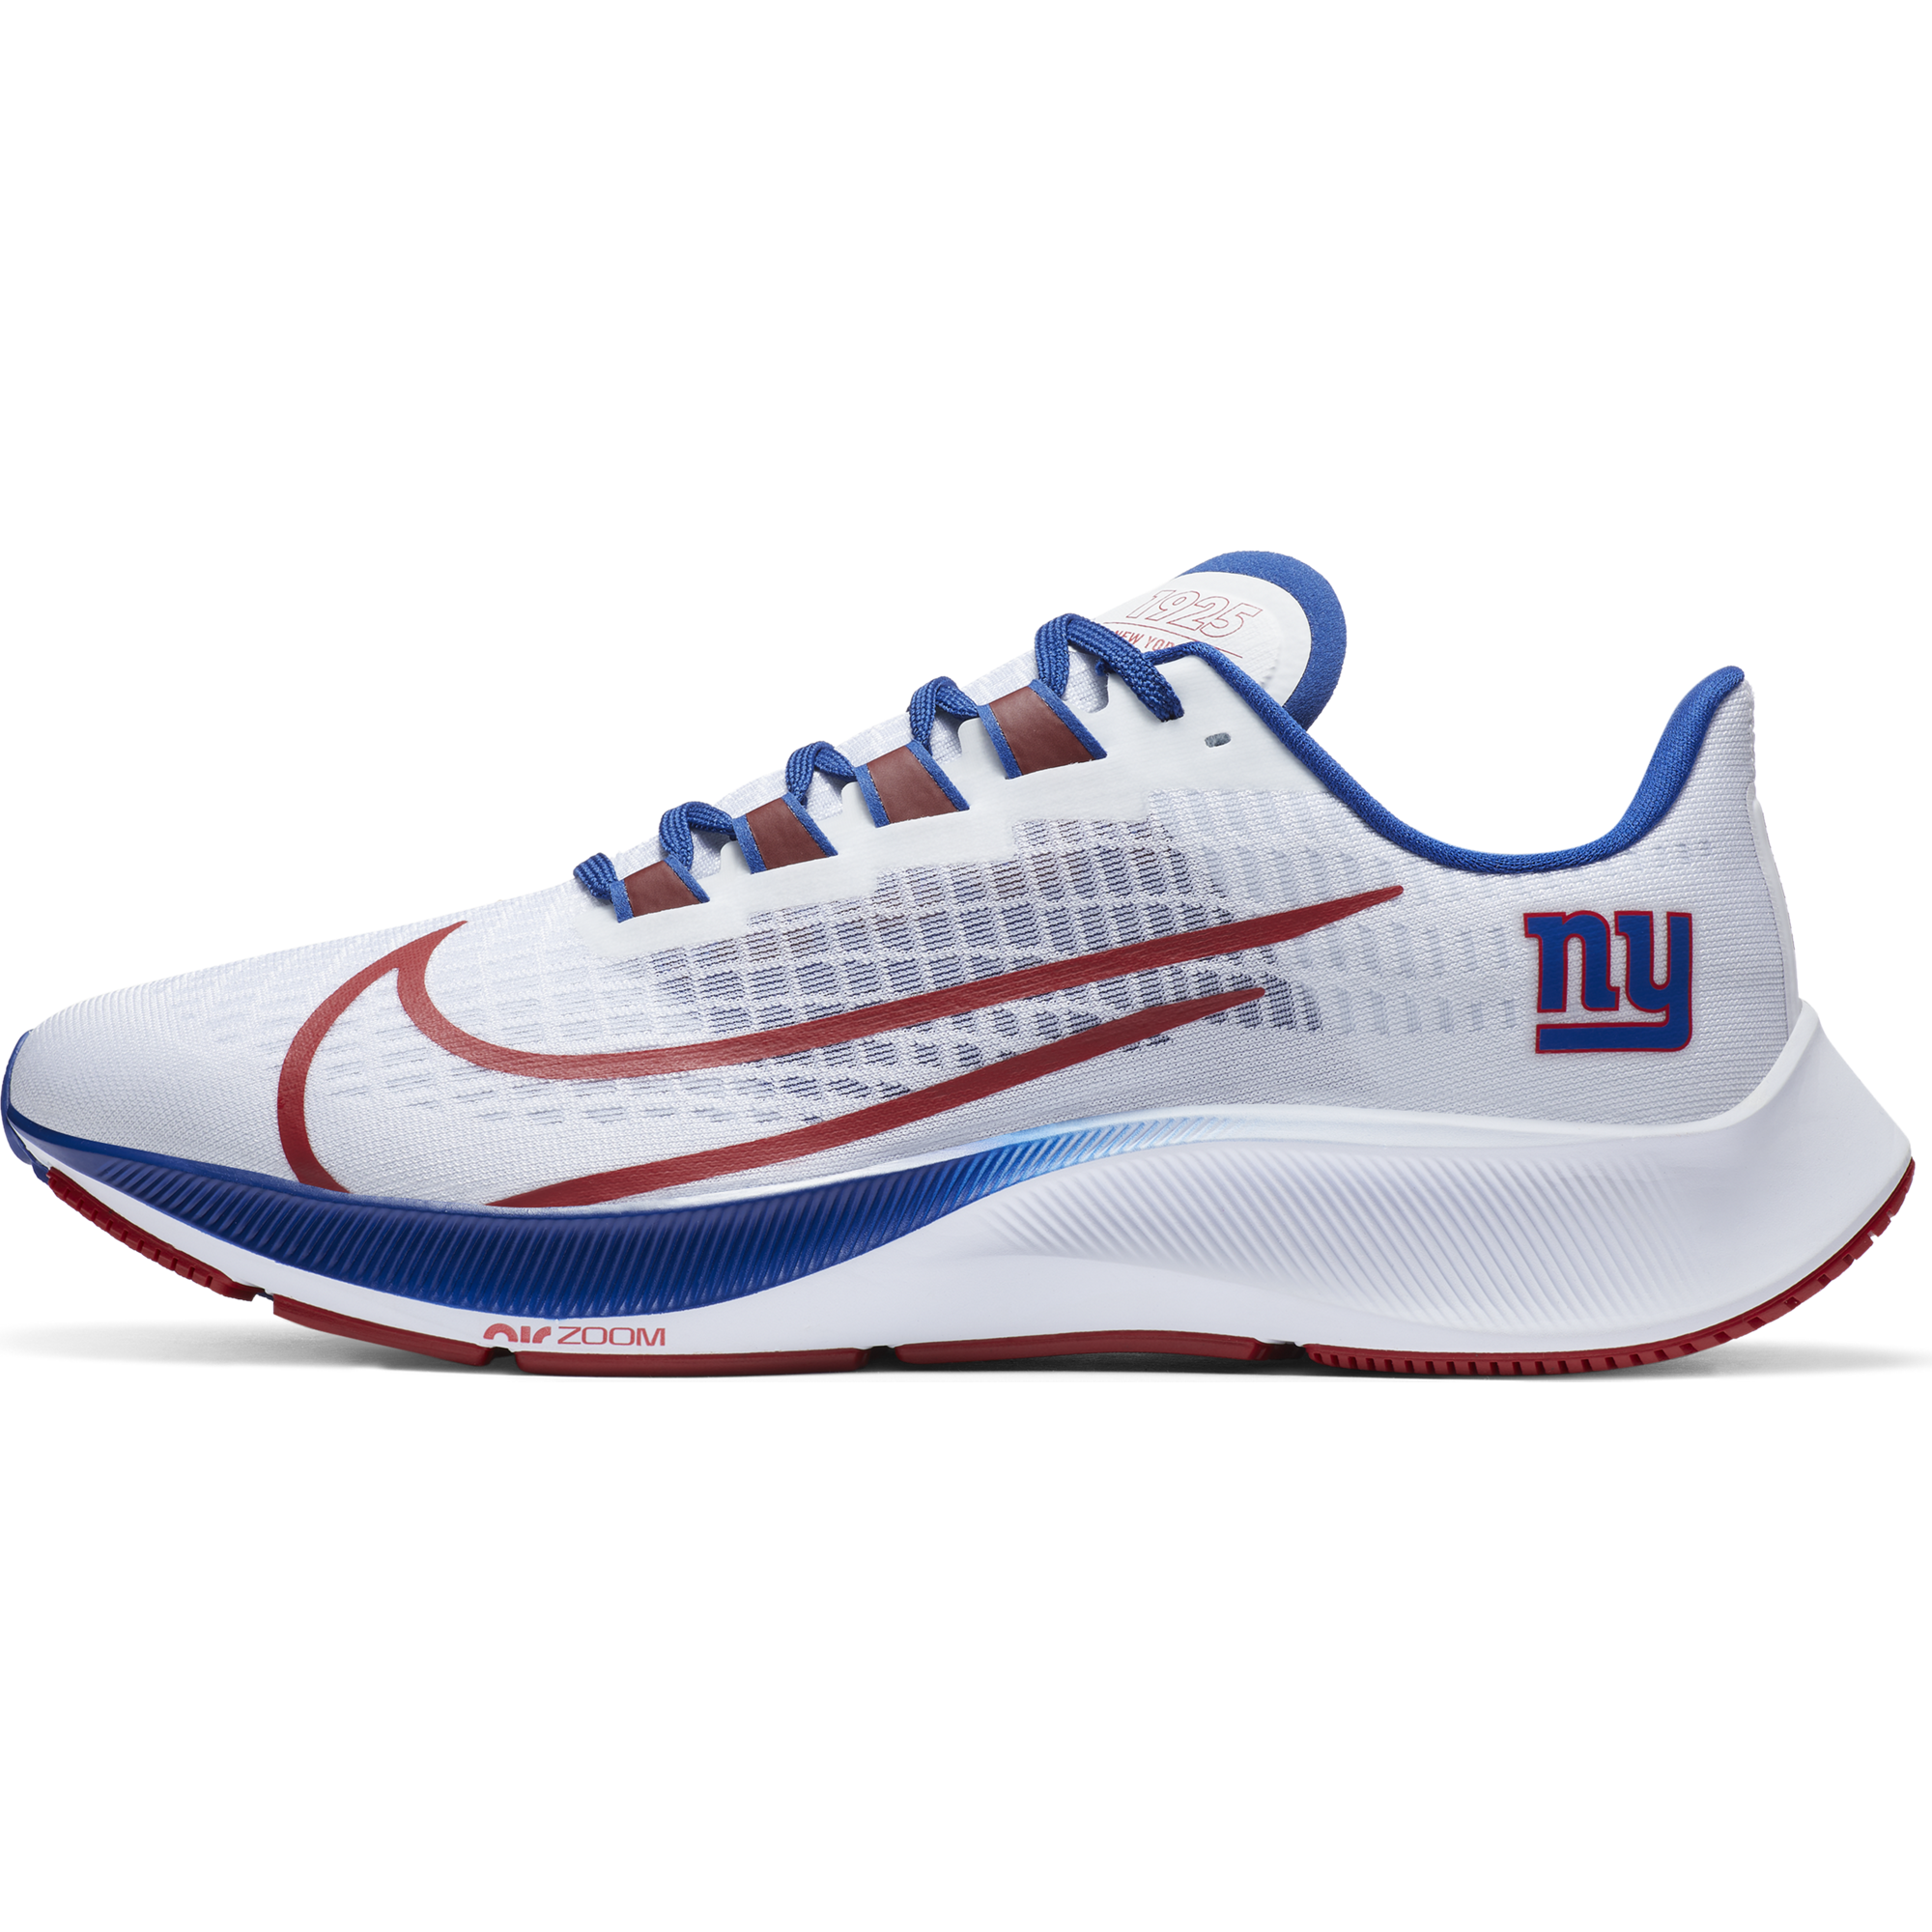 Nike releases NFL-themed Air Zoom